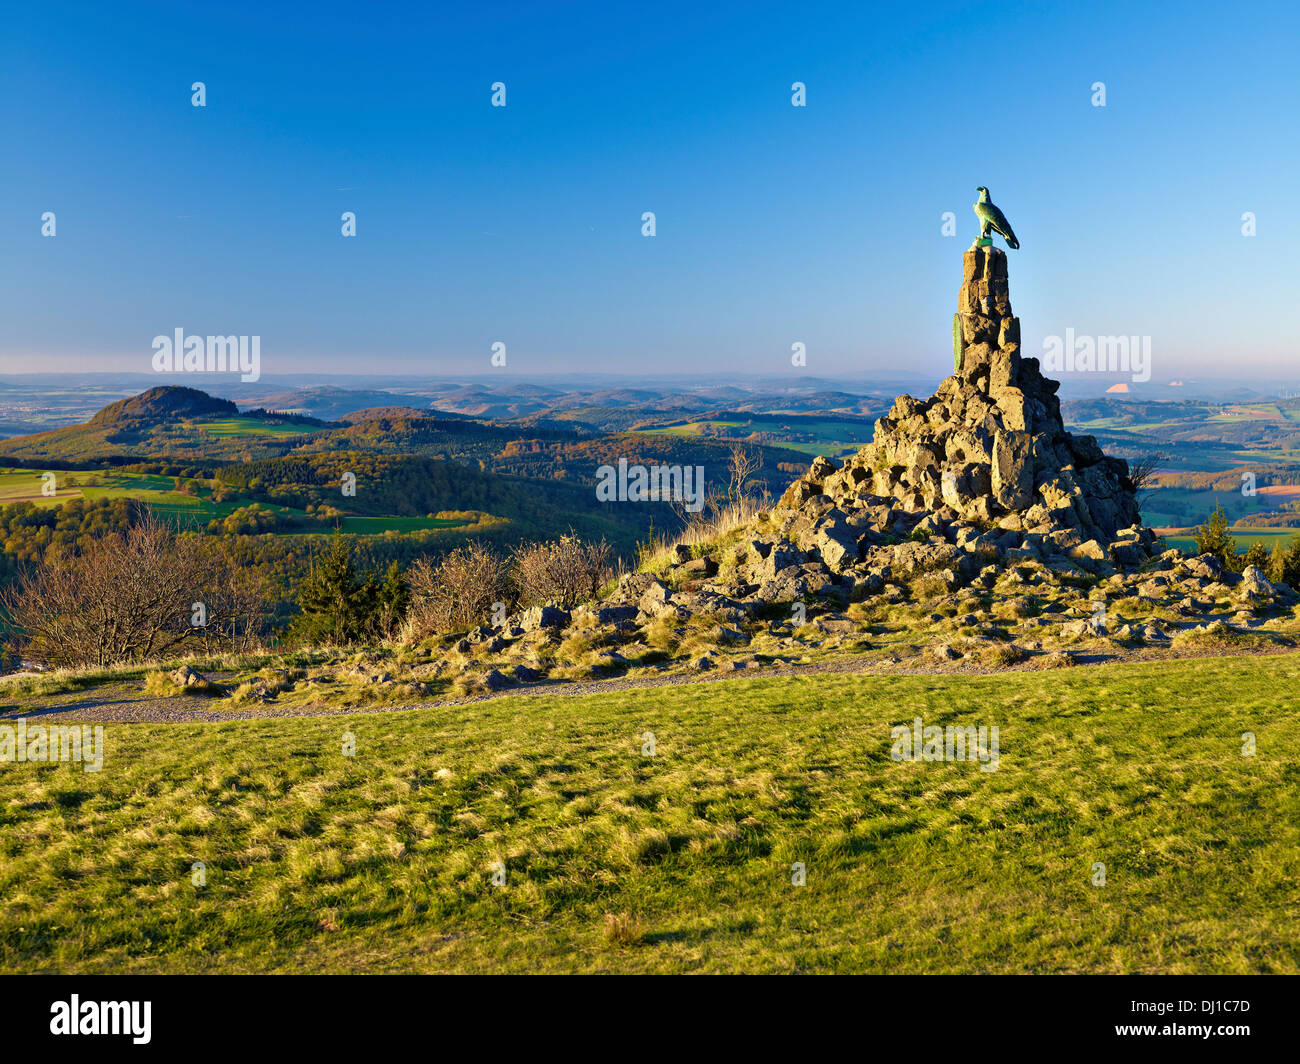 Pilots memorial at the Wasserkuppe, Rhön, Hesse, Germany - Stock Image